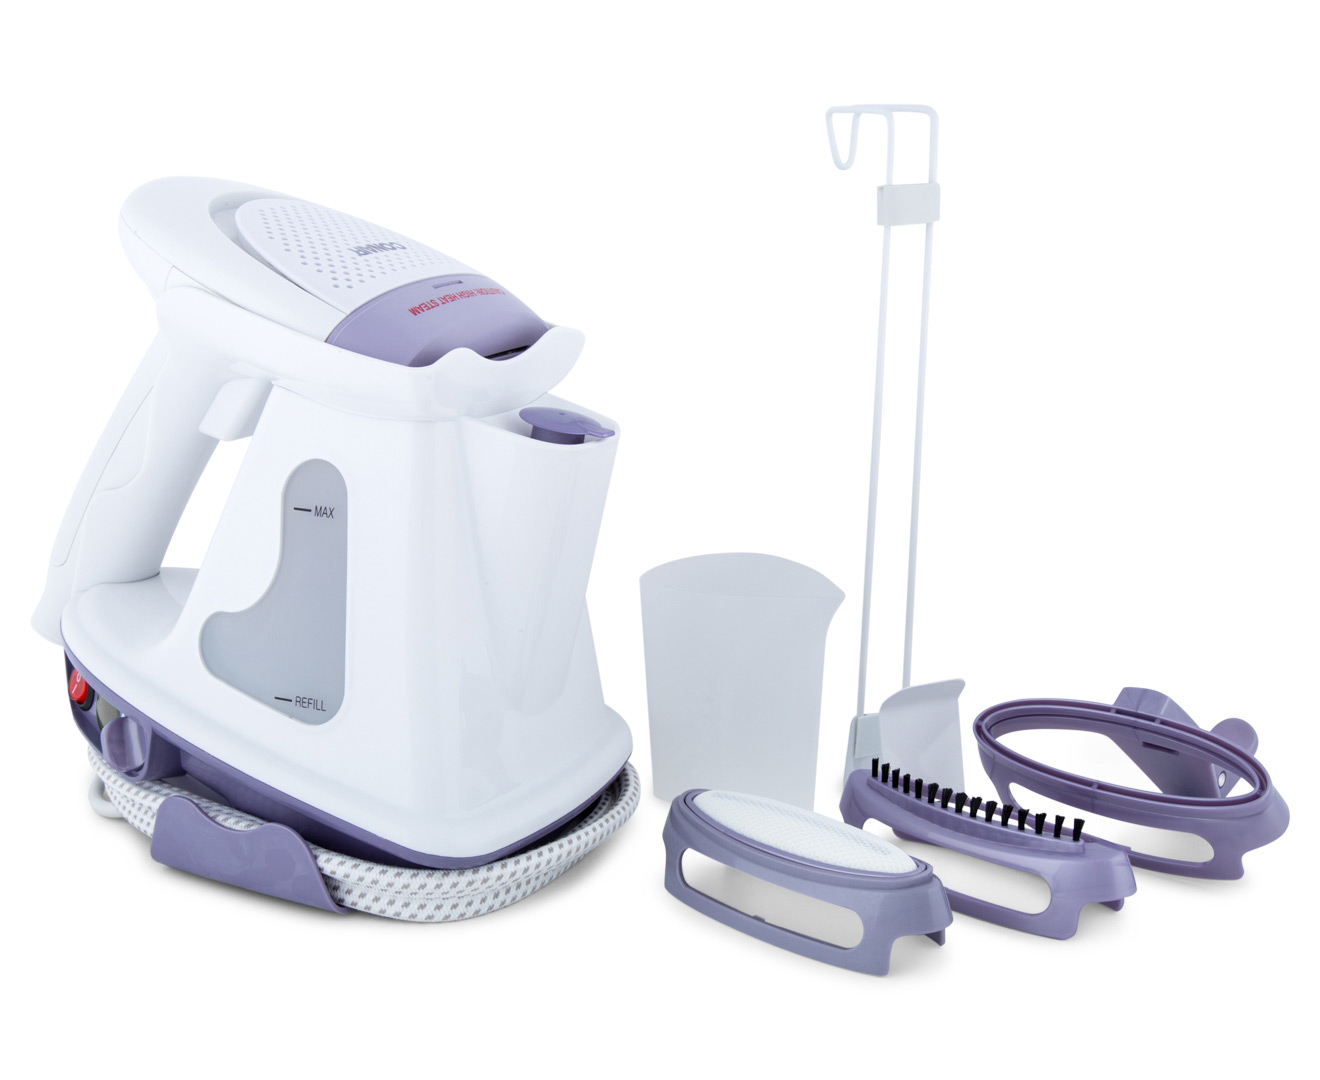 Remarkable Conair Extreme Steam Portable Tabletop Fabric Steamer Home Interior And Landscaping Analalmasignezvosmurscom